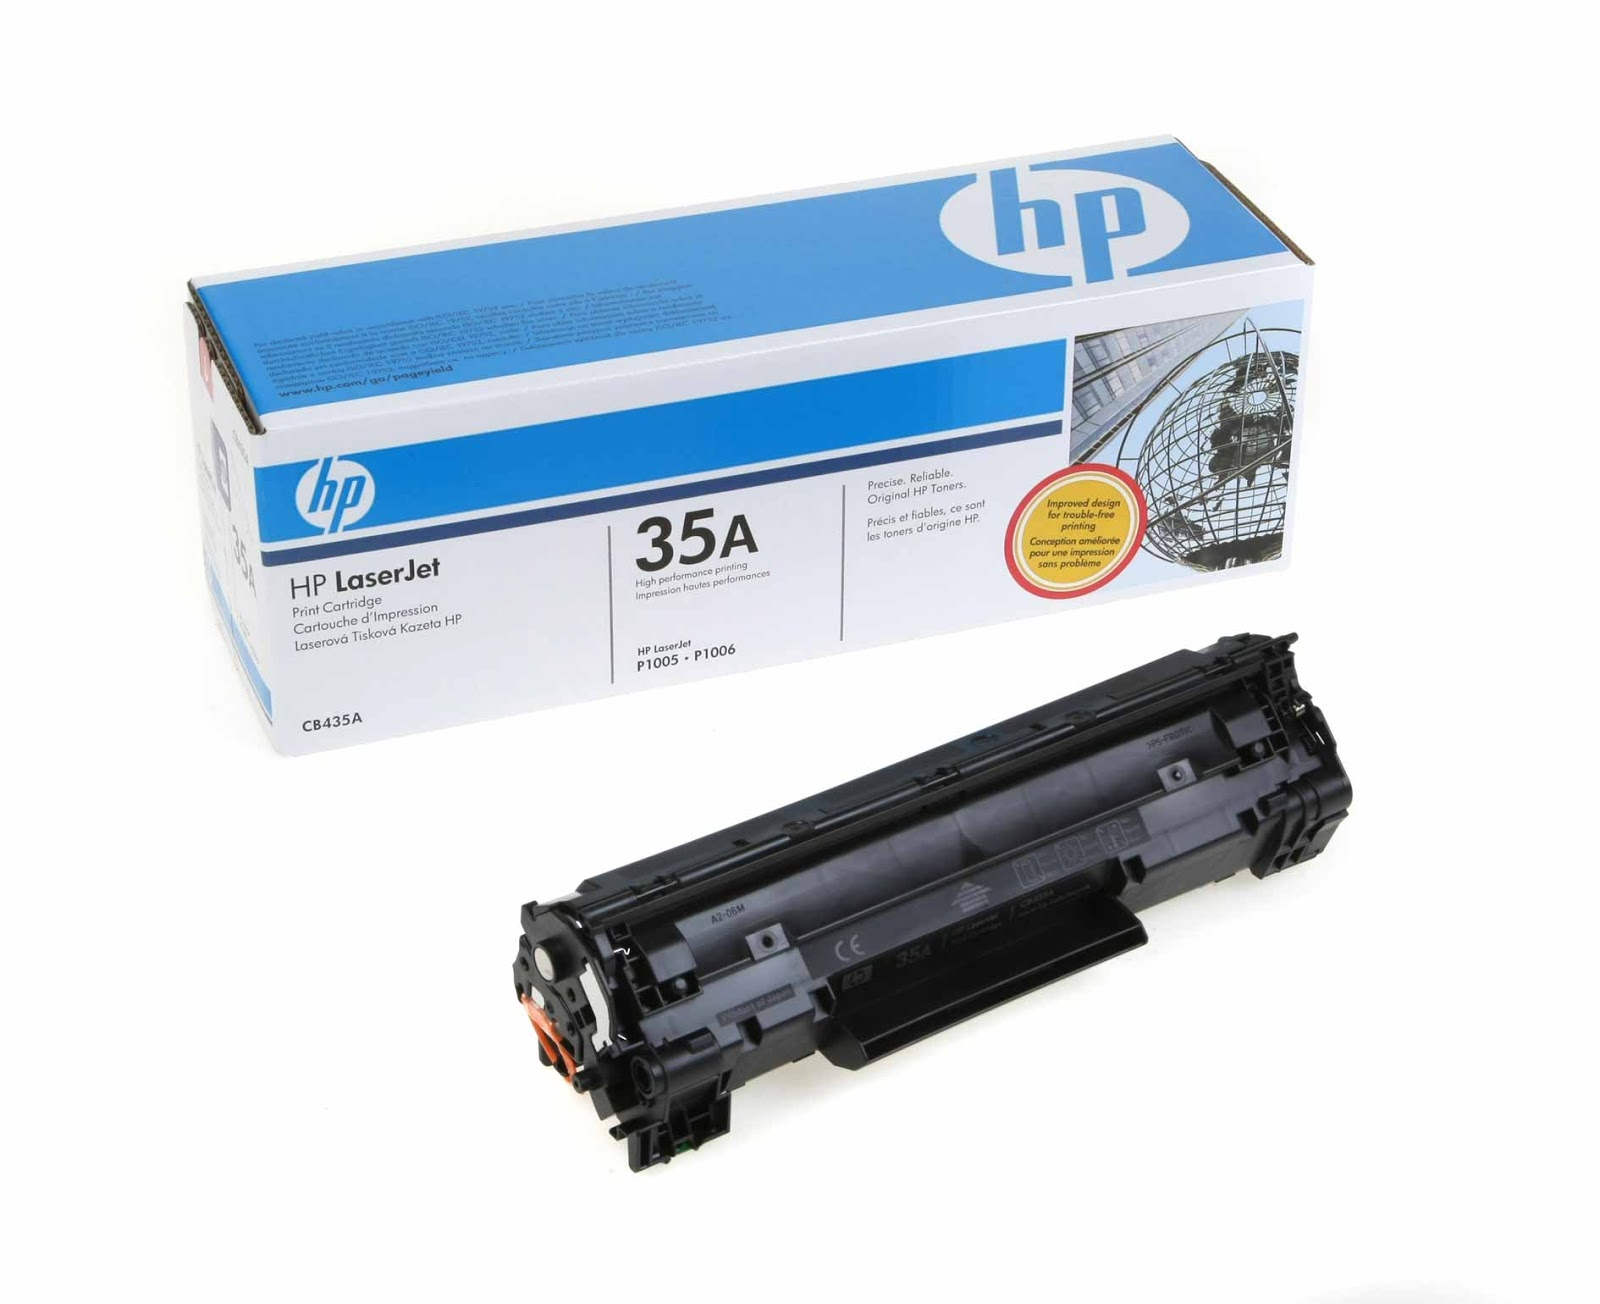 imprimante hp laserjet p1005 windows 7